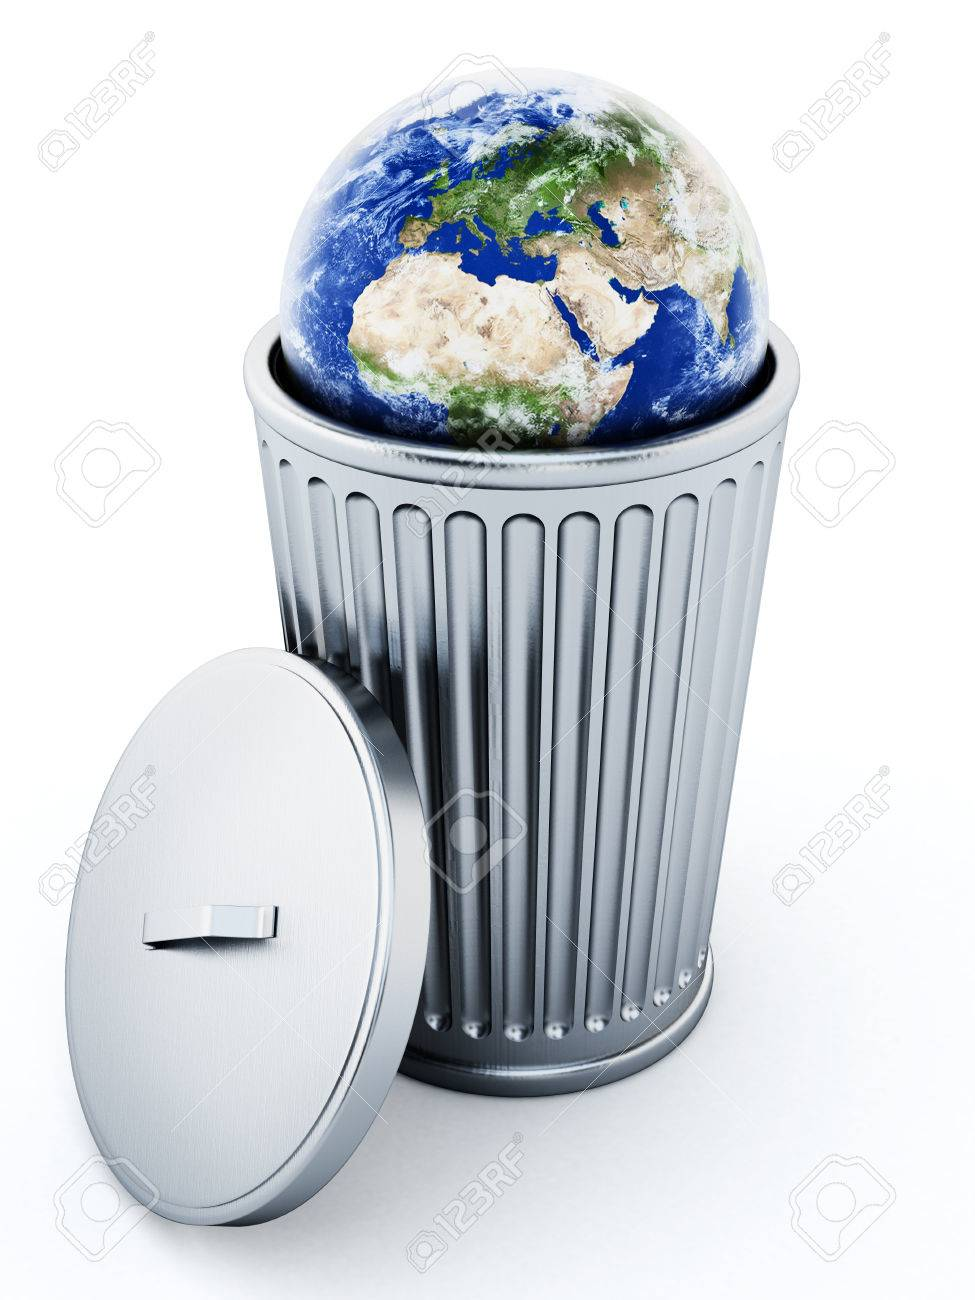 Stock Photo Trash Can With Rubish And Earth Waste